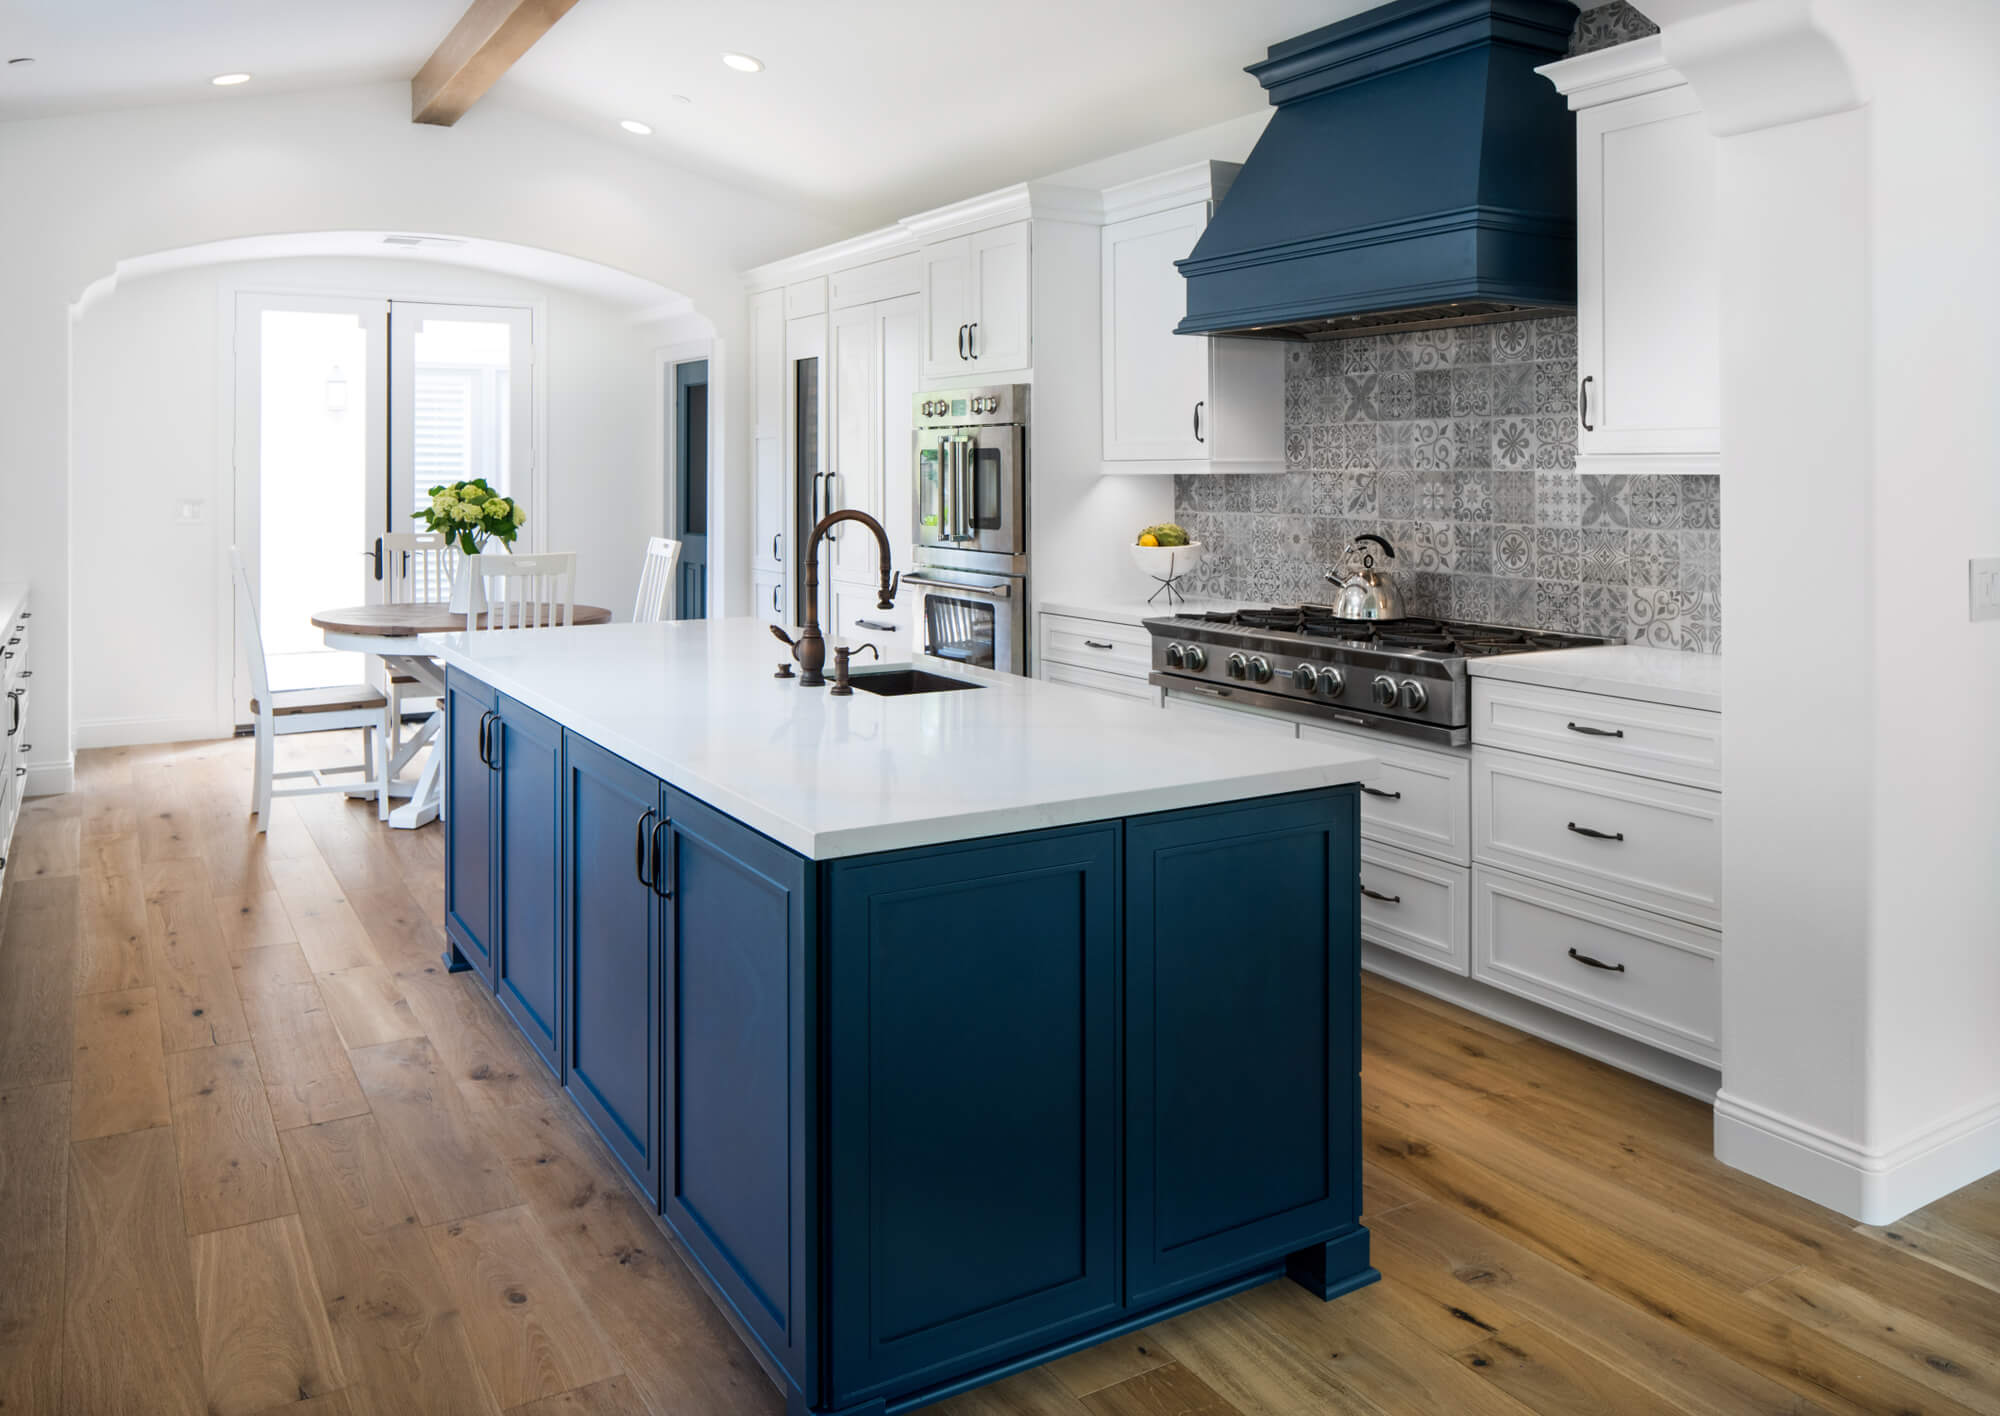 San Clemente Blue Kitchen Trends of 2020